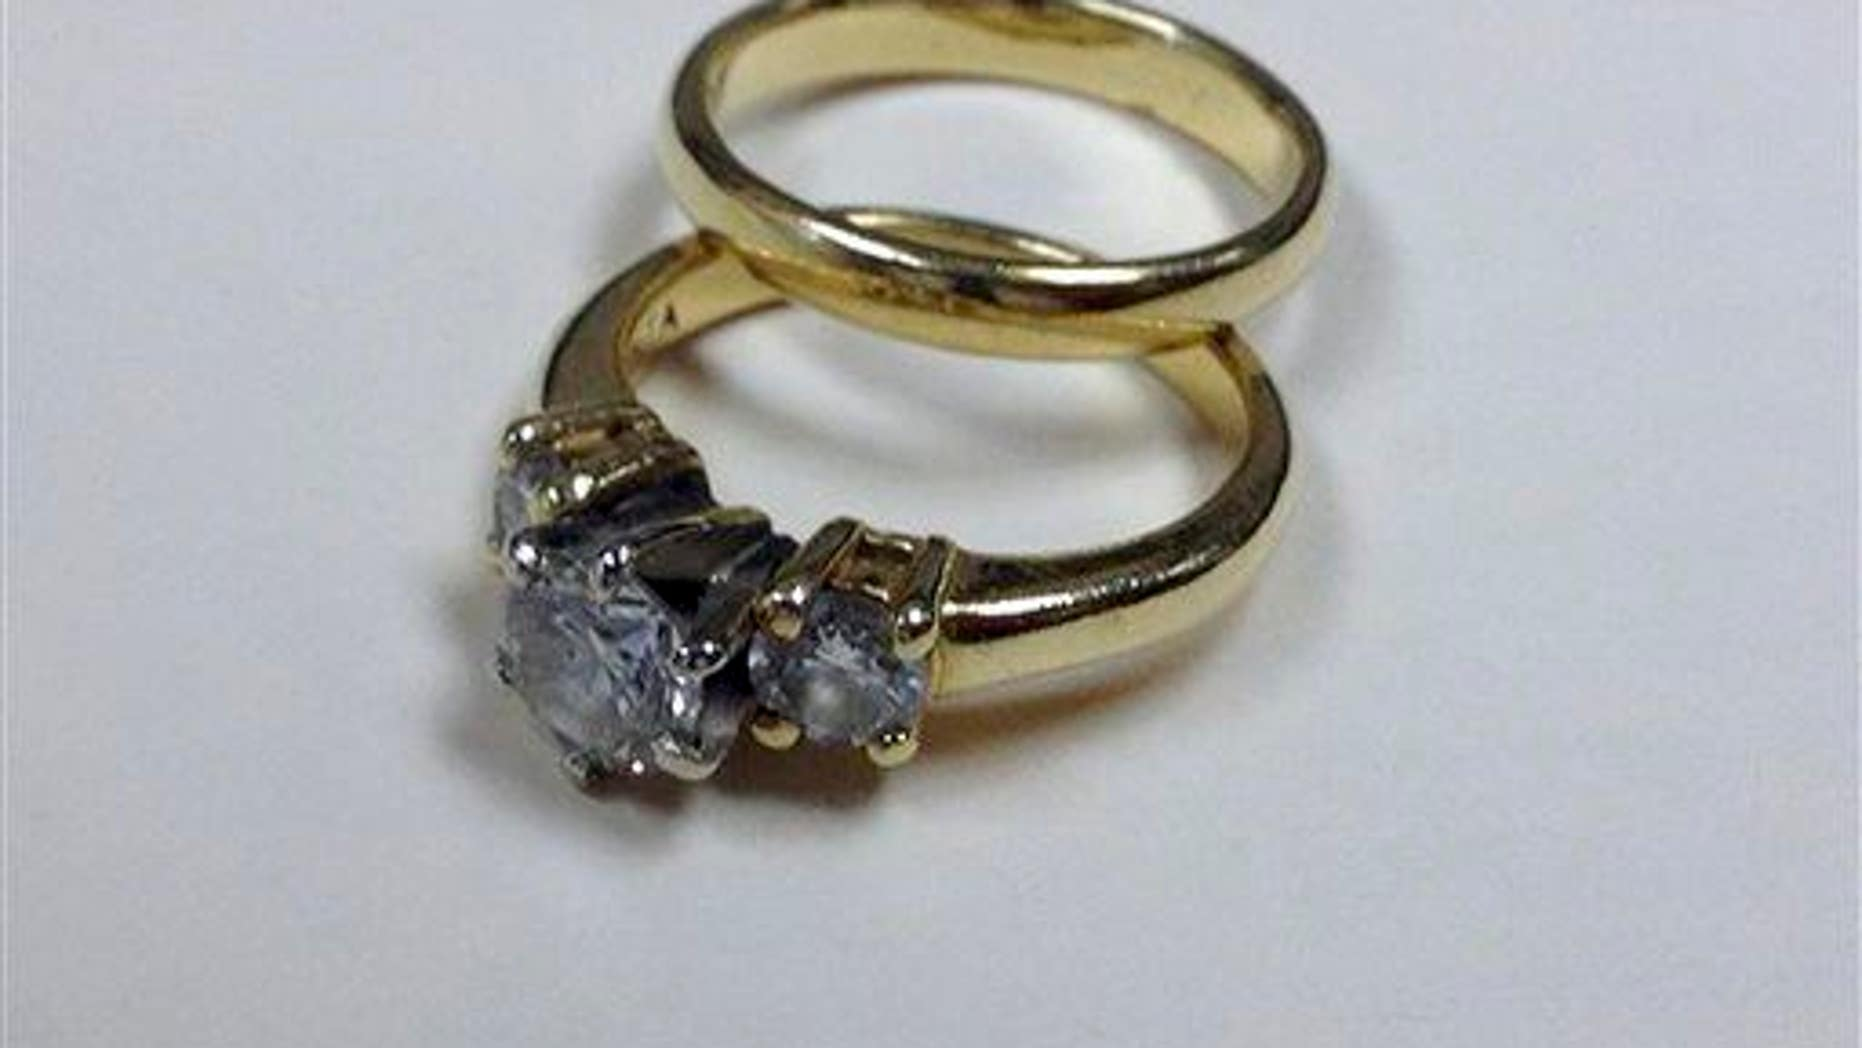 Wedding rings are shown.